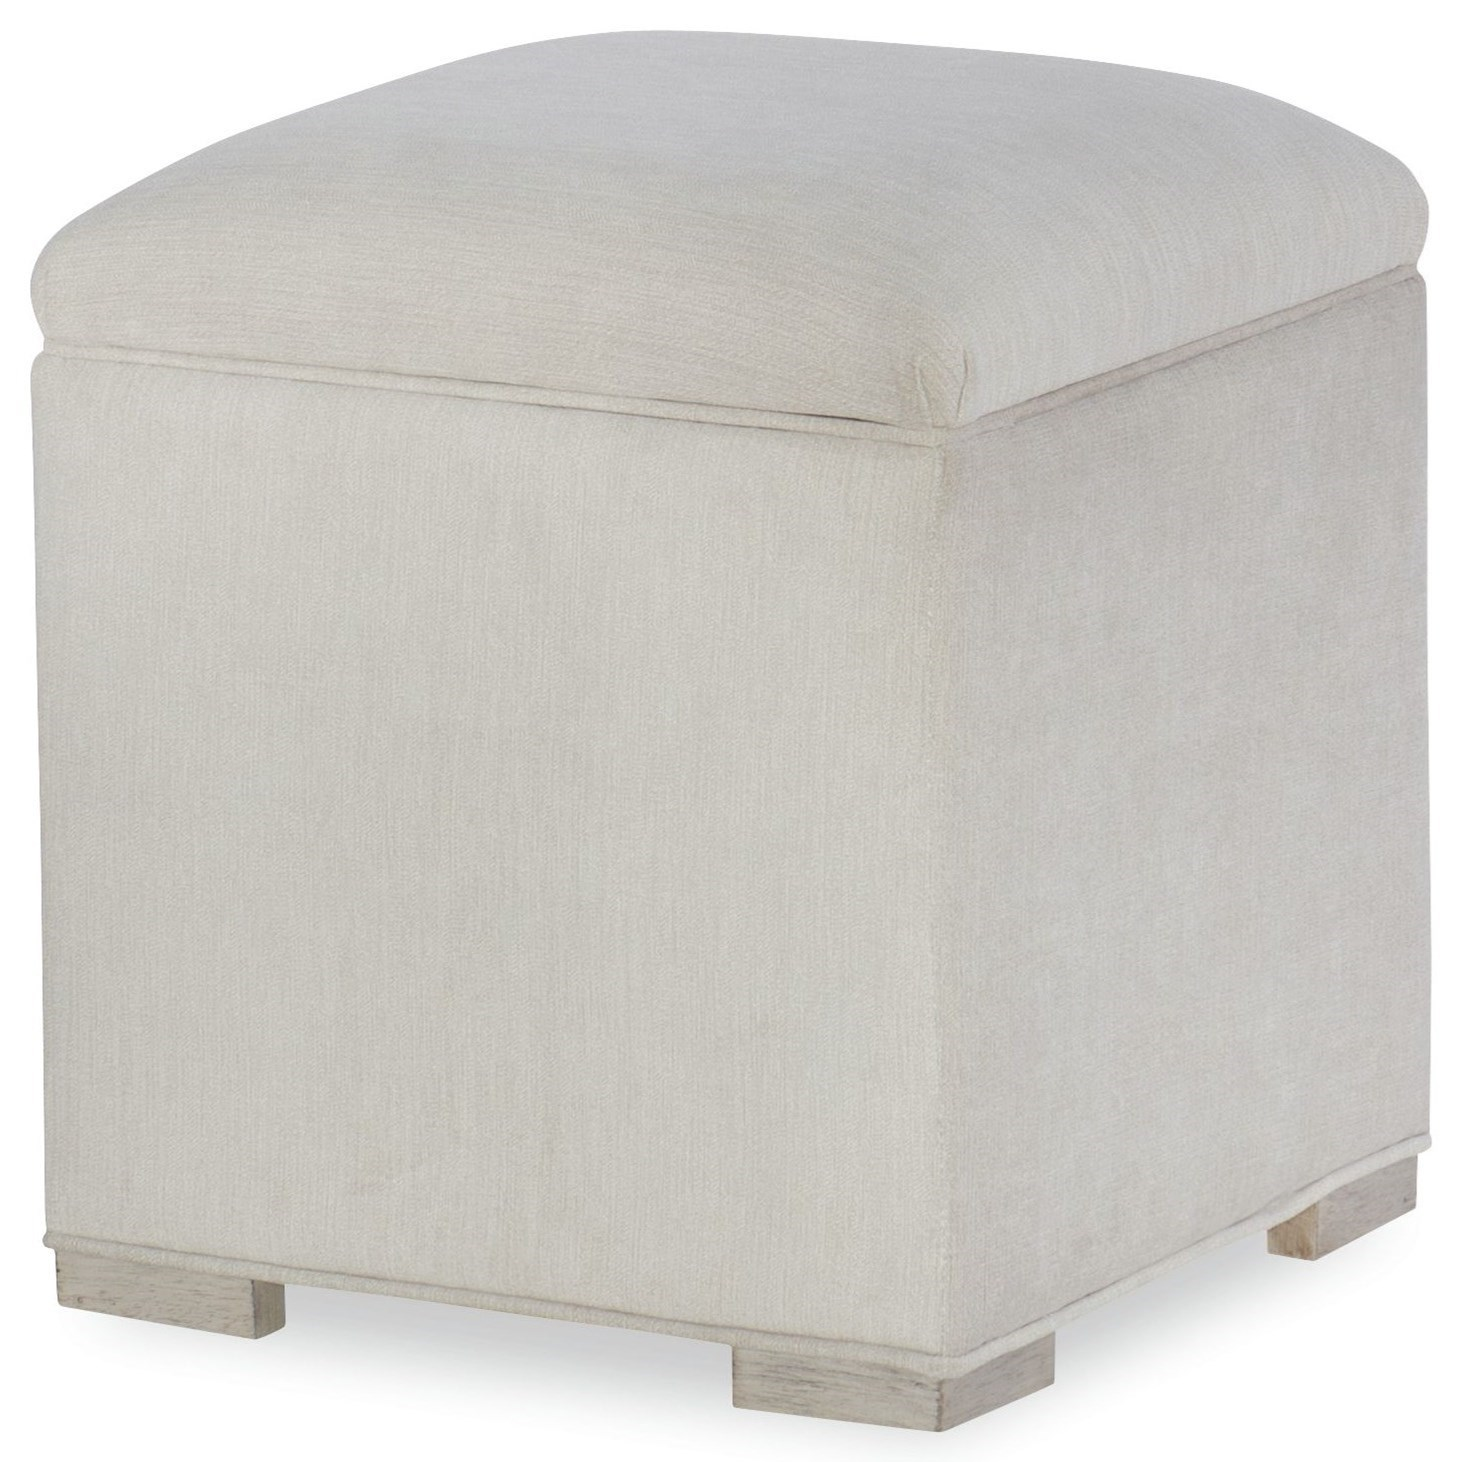 Rachael Ray Home by Legacy Classic Cinema Vanity Stool  - Item Number: 7200-7401